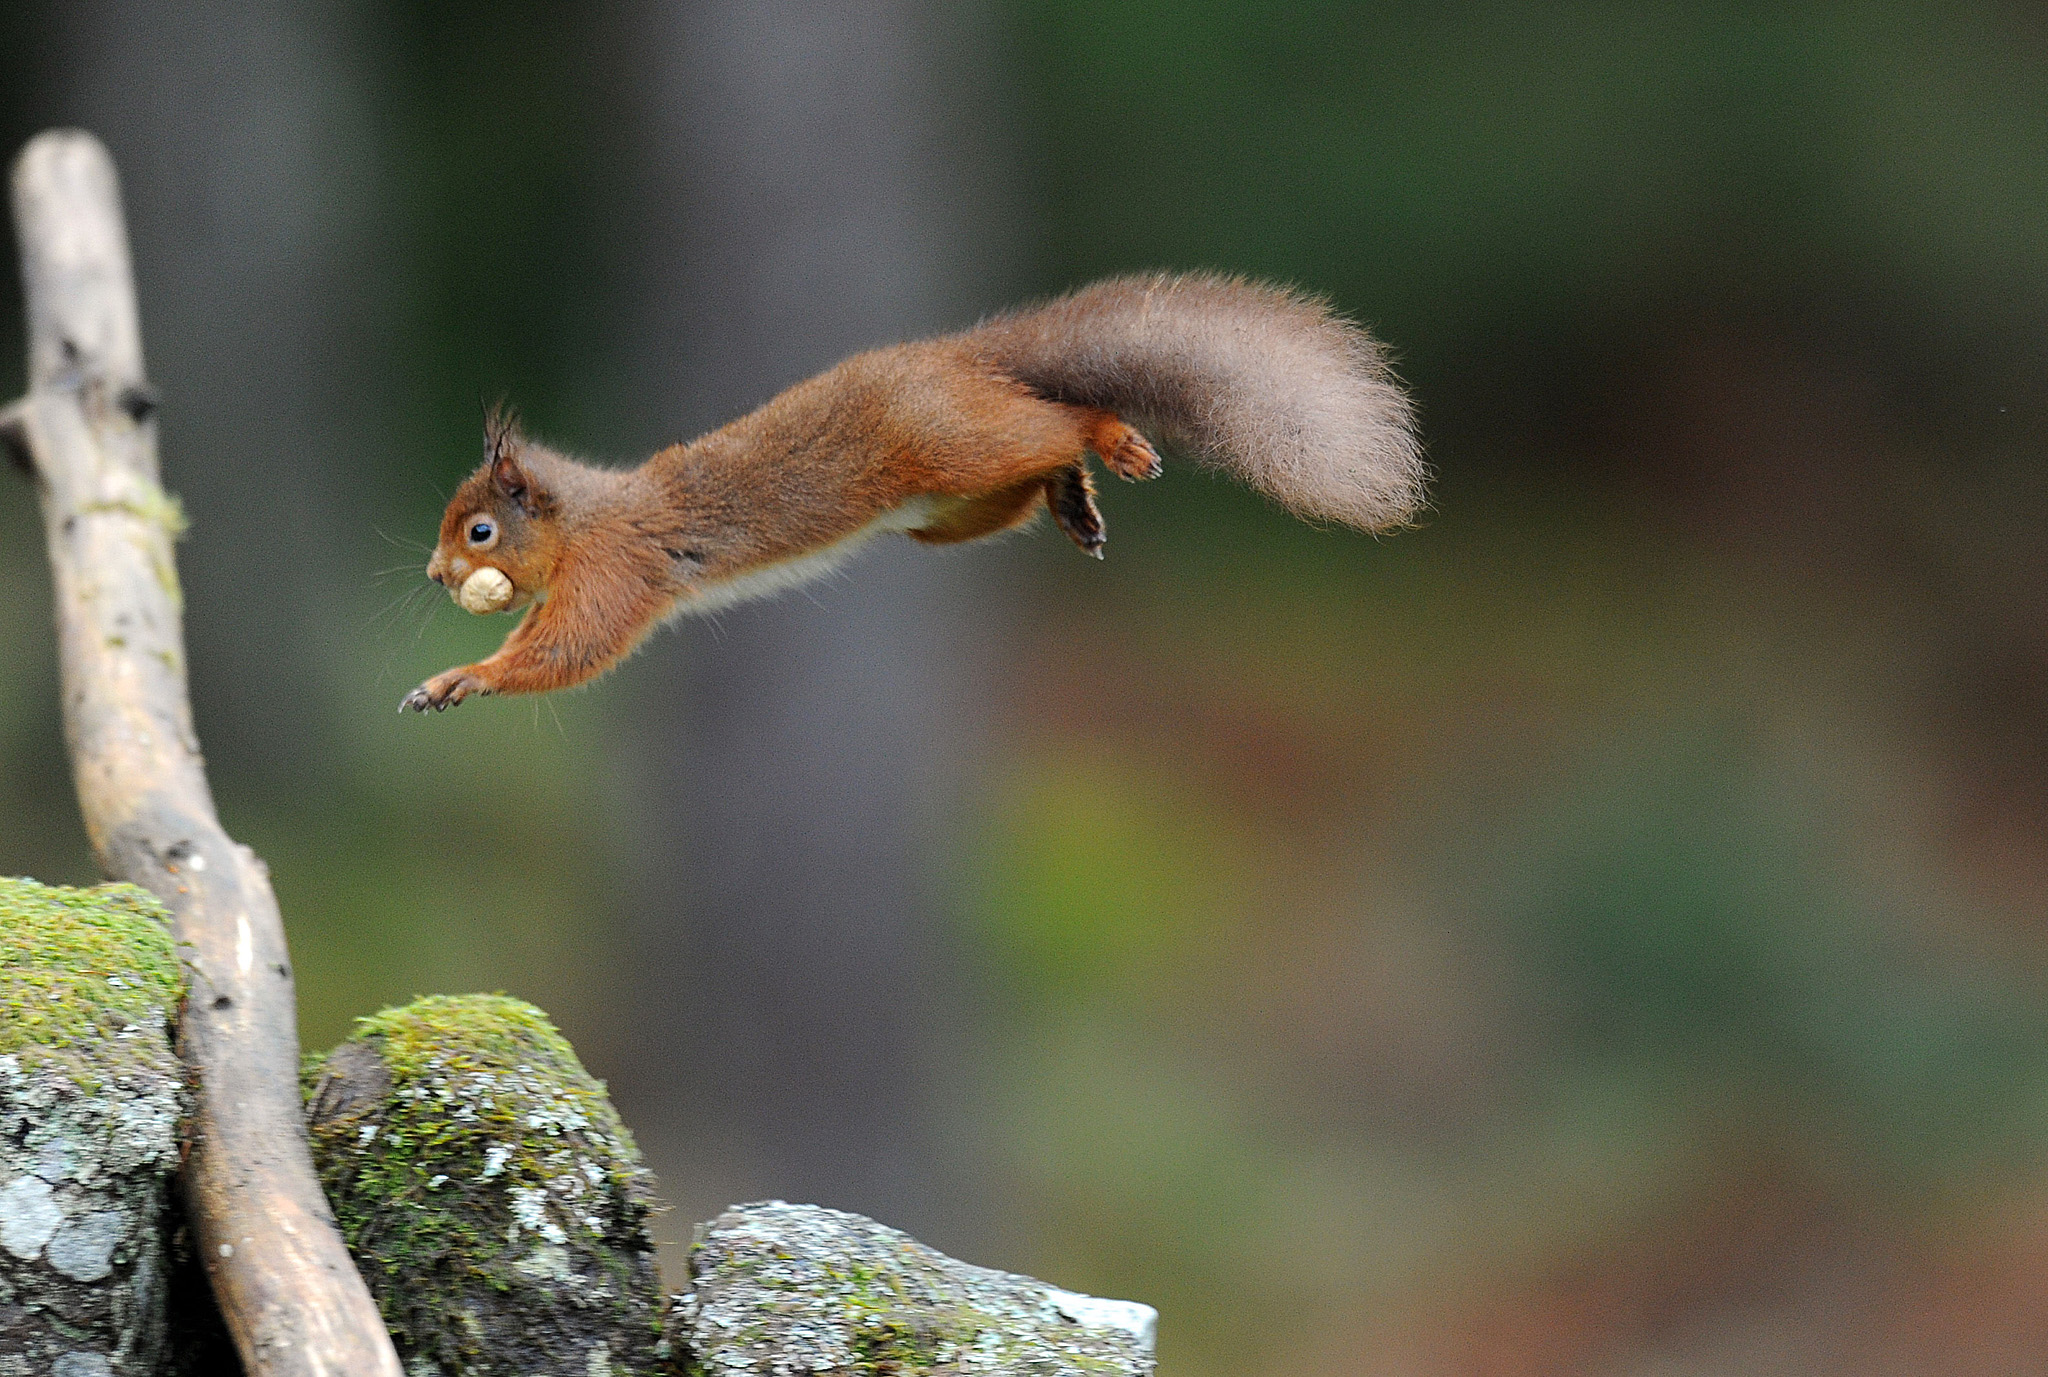 Spring weather Mar 7th...A Red Squirrel, with a nut in it's mouth, jumps across a wall in Kielder Forest, Northumberland. PRESS ASSOCIATION Photo. Picture date: Friday March 7, 2014. Kielder Forest is England's largest forest at 250 square miles and is home to the largest remaining Red Squirrel population in England. Photo credit should read: Owen Humphreys/PA Wire